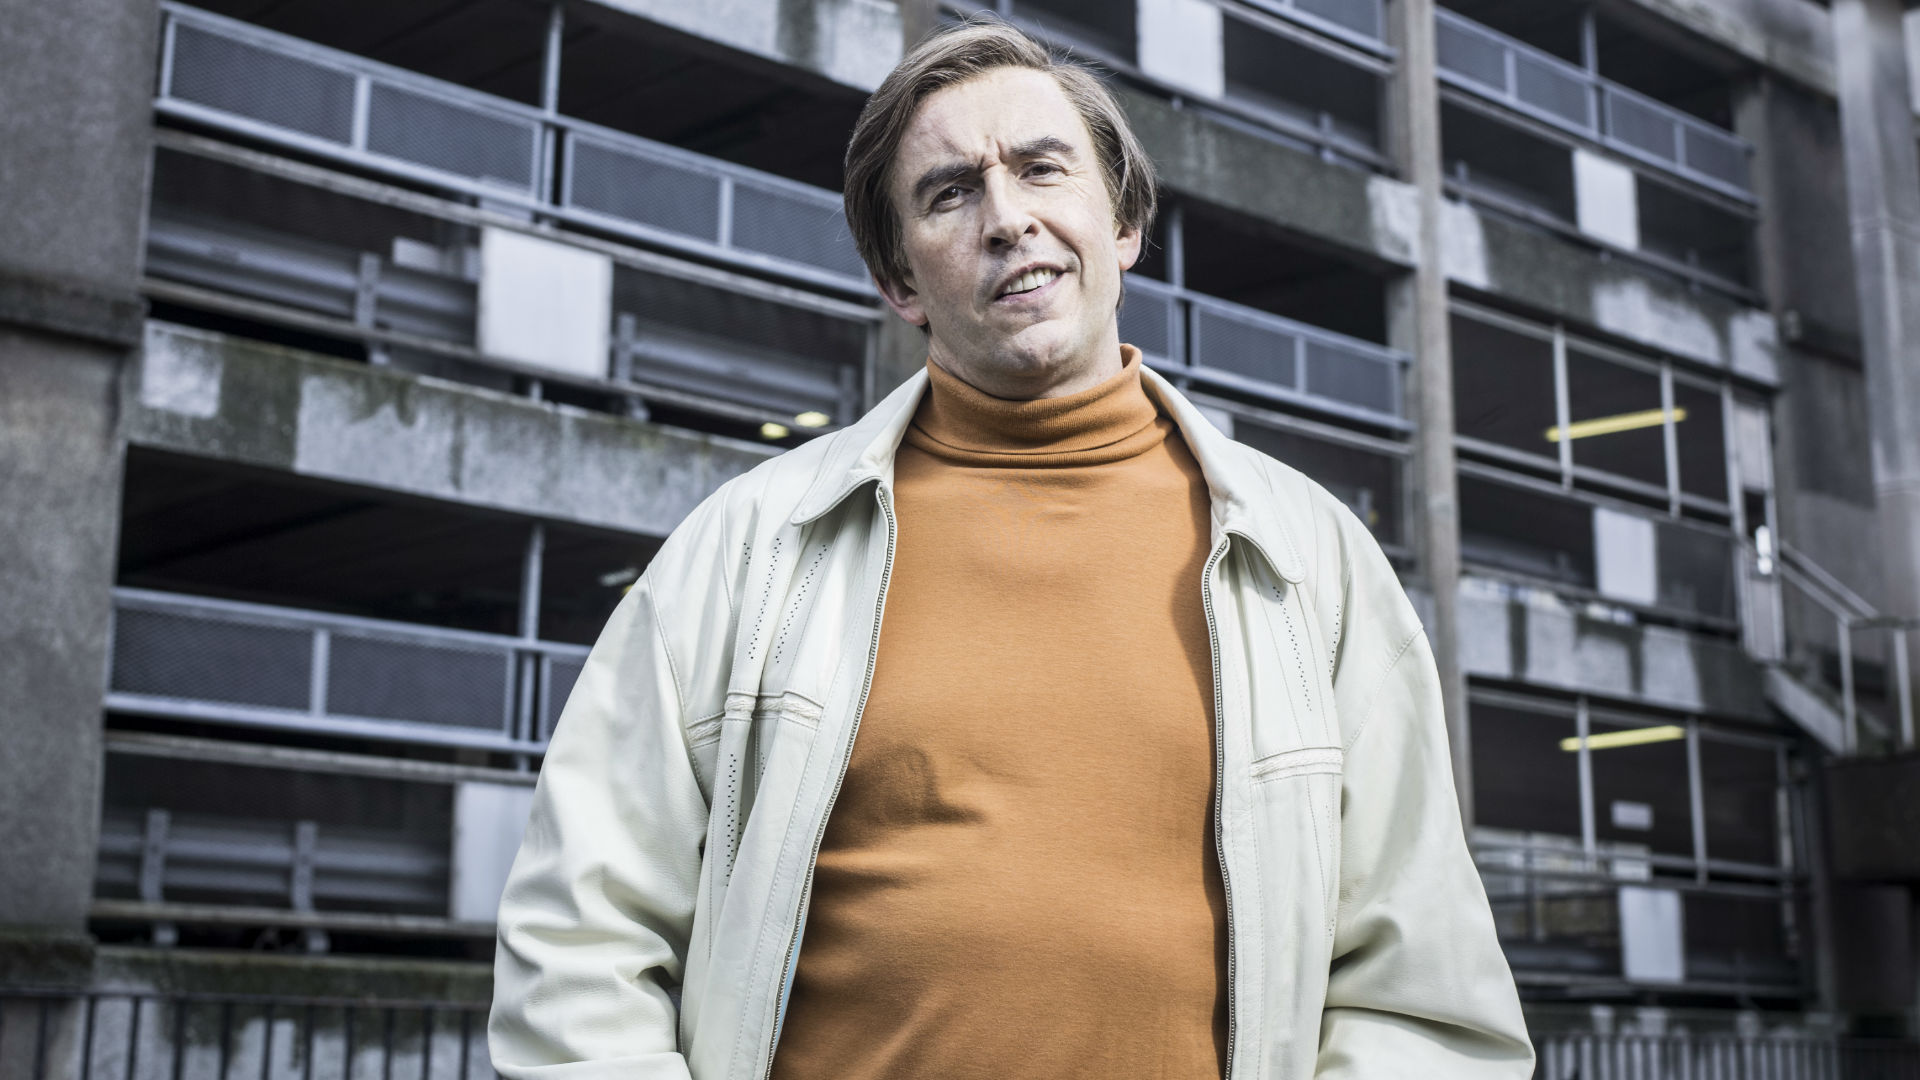 Alan Partridge's Scissored Isle